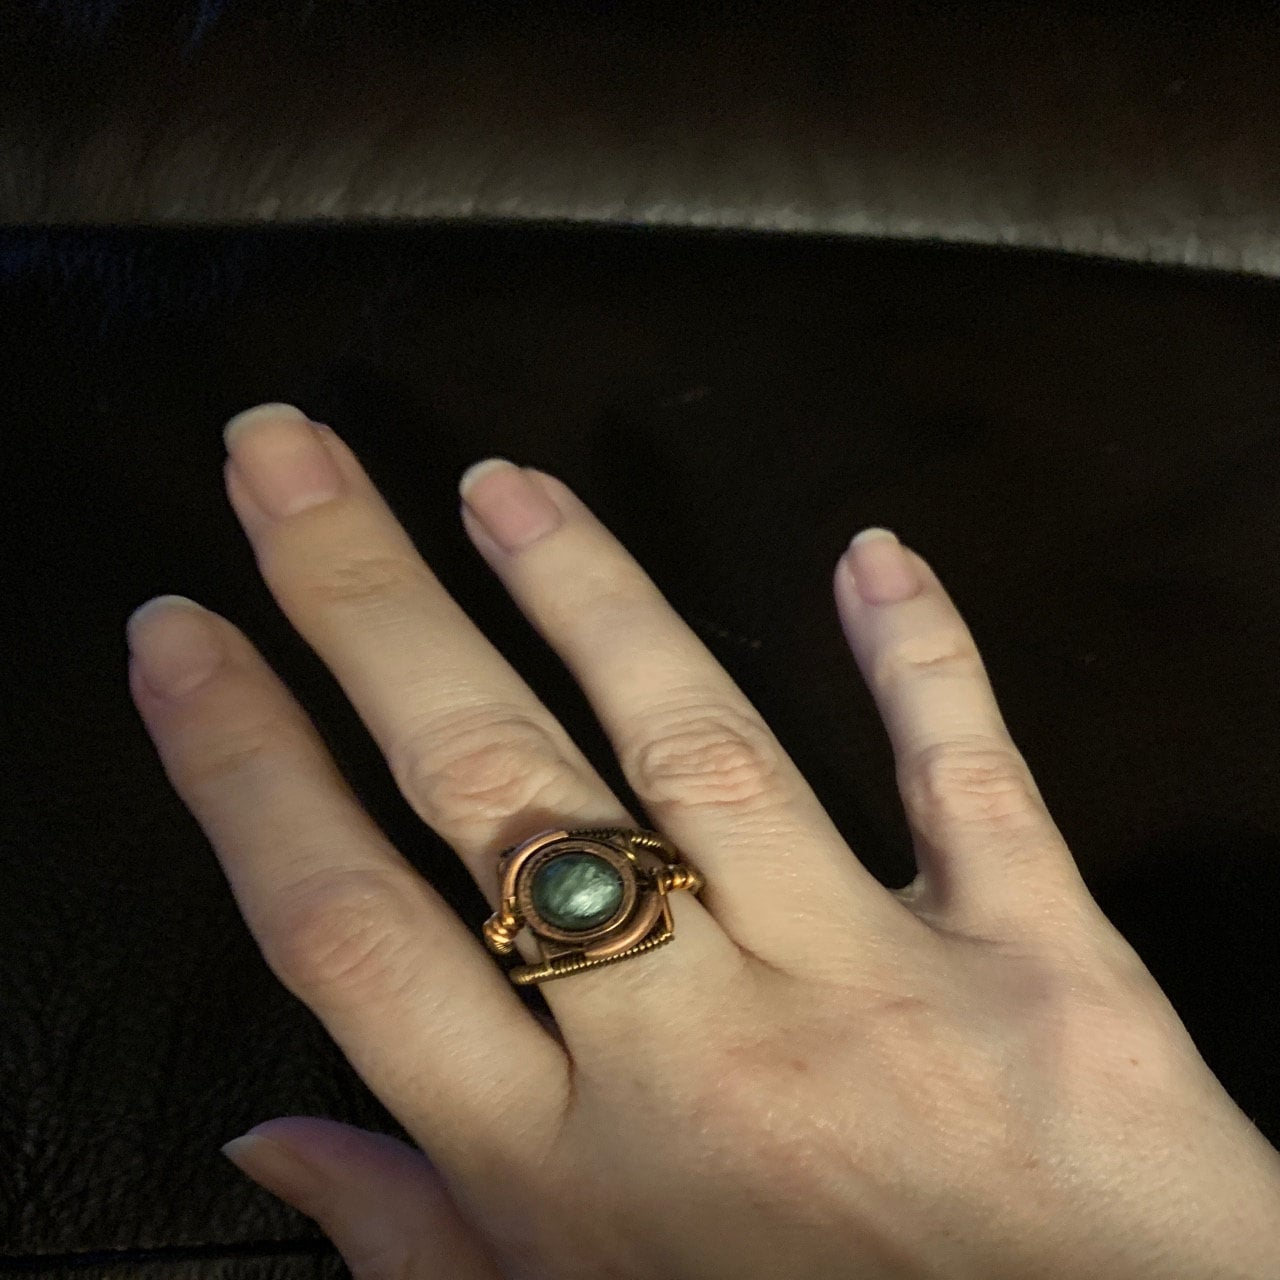 faerywing added a photo of their purchase